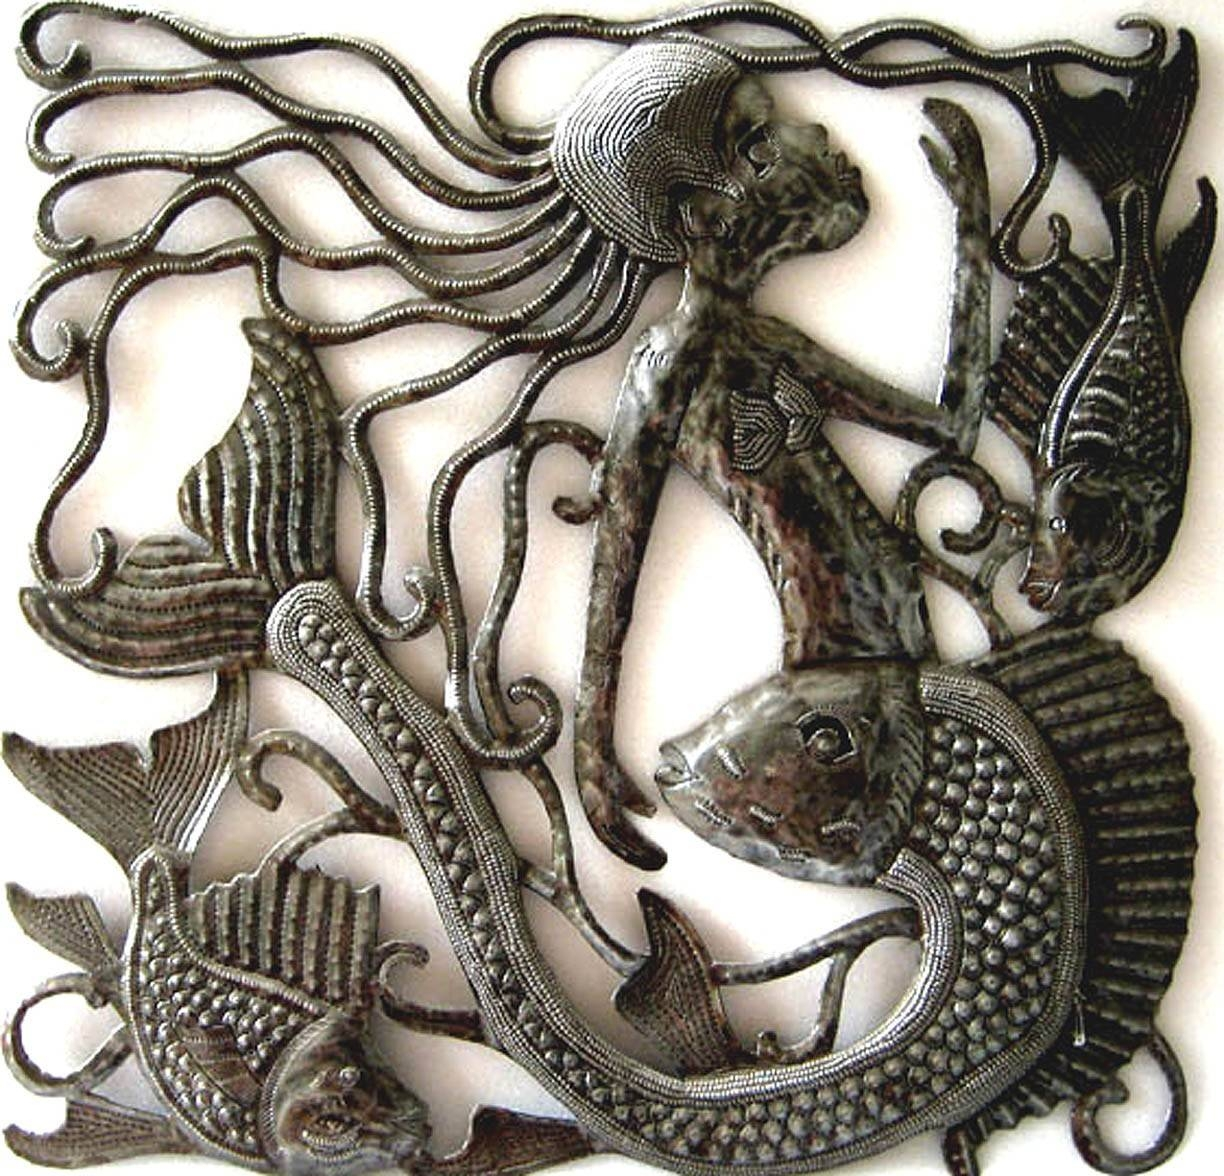 Metal Wall Art Home Decor Metal Mermaid Wall Hanging Intended For Most Recent Mermaid Metal Wall Art (View 10 of 20)